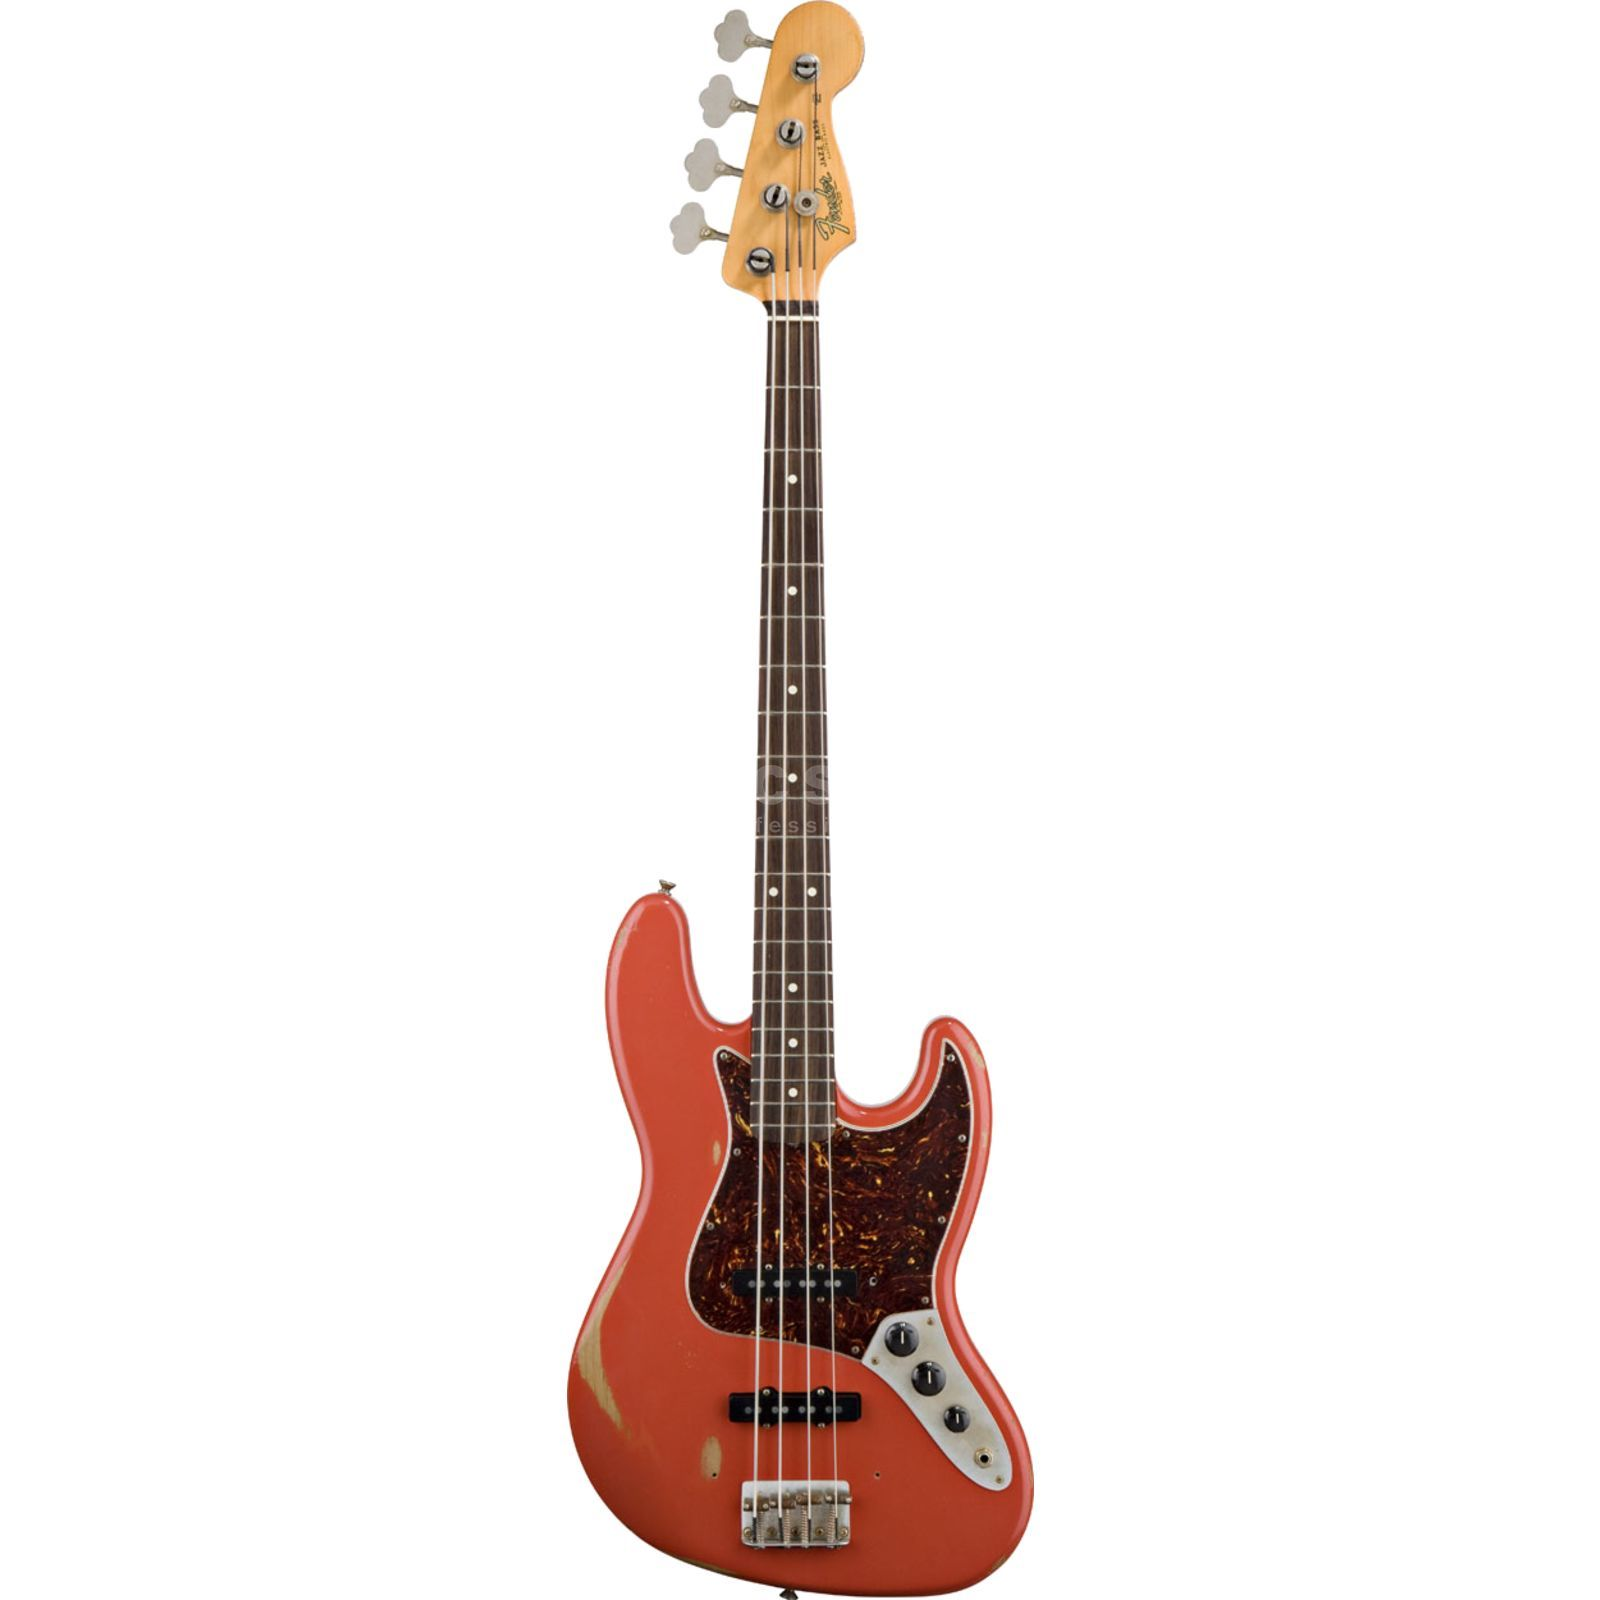 Fender Road Worn 60s Jazz Bass, Fiest a Red   Immagine prodotto